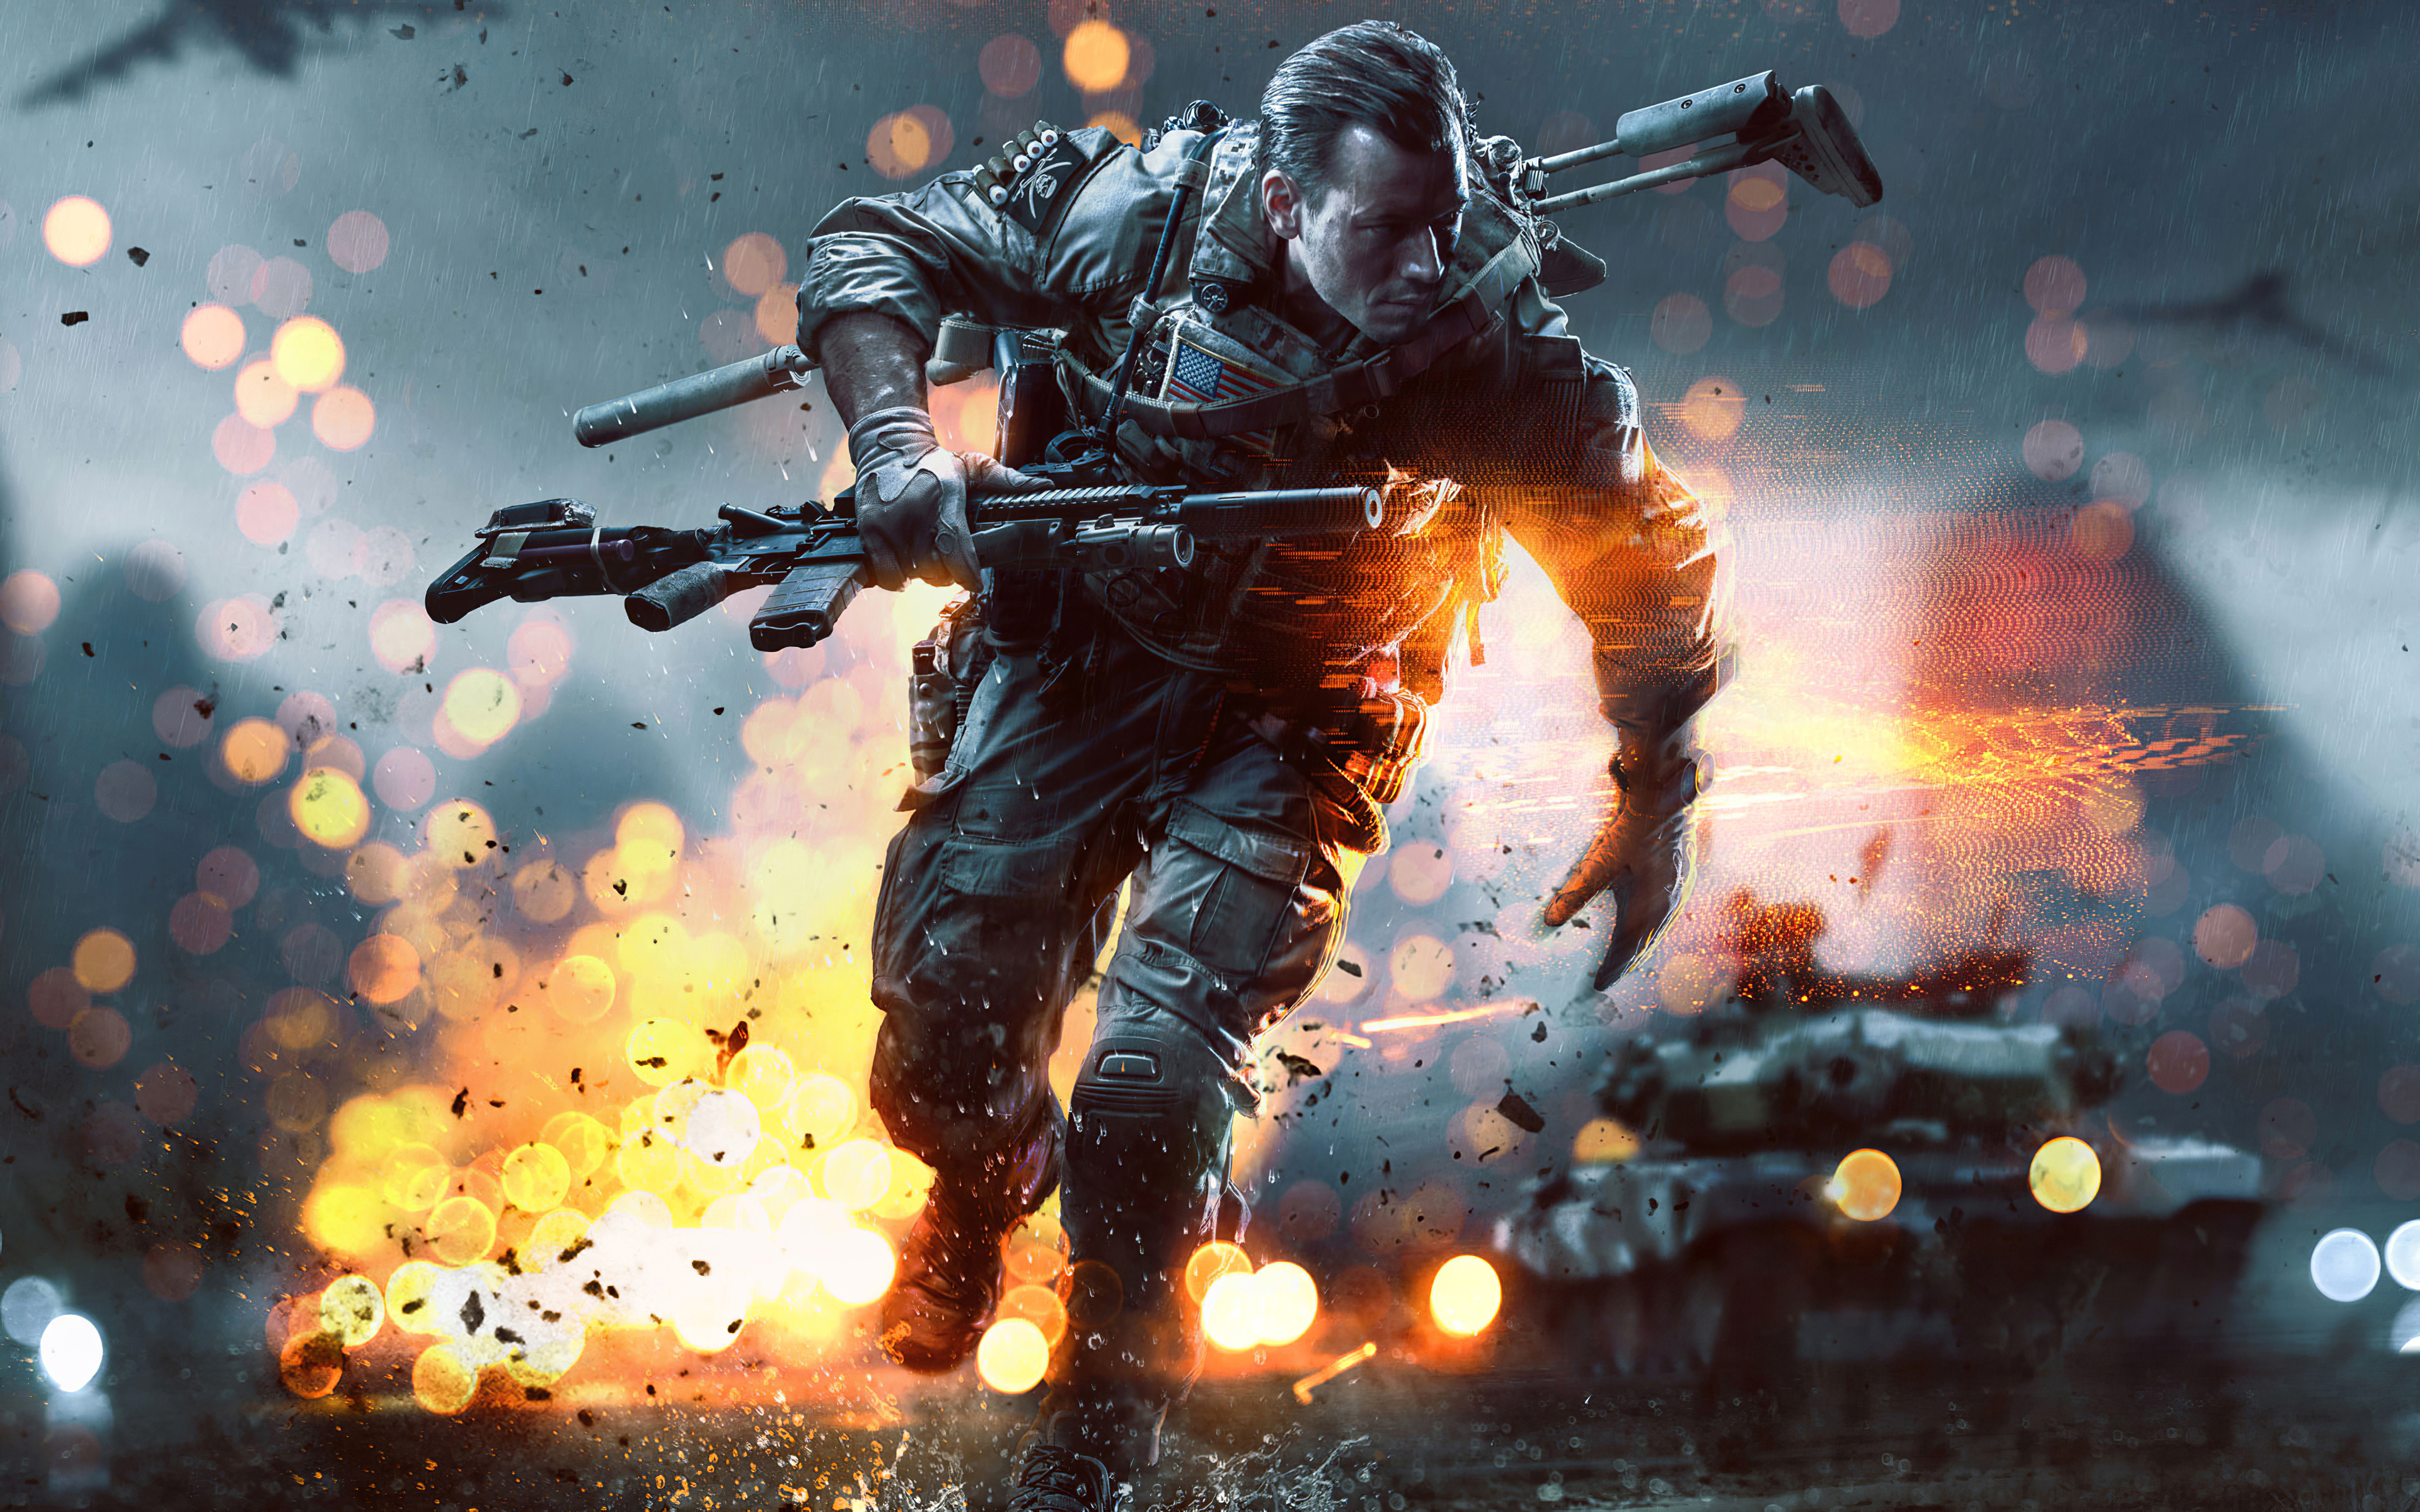 2019 Battlefield 4 Hd Games 4k Wallpapers Images Backgrounds Photos And Pictures